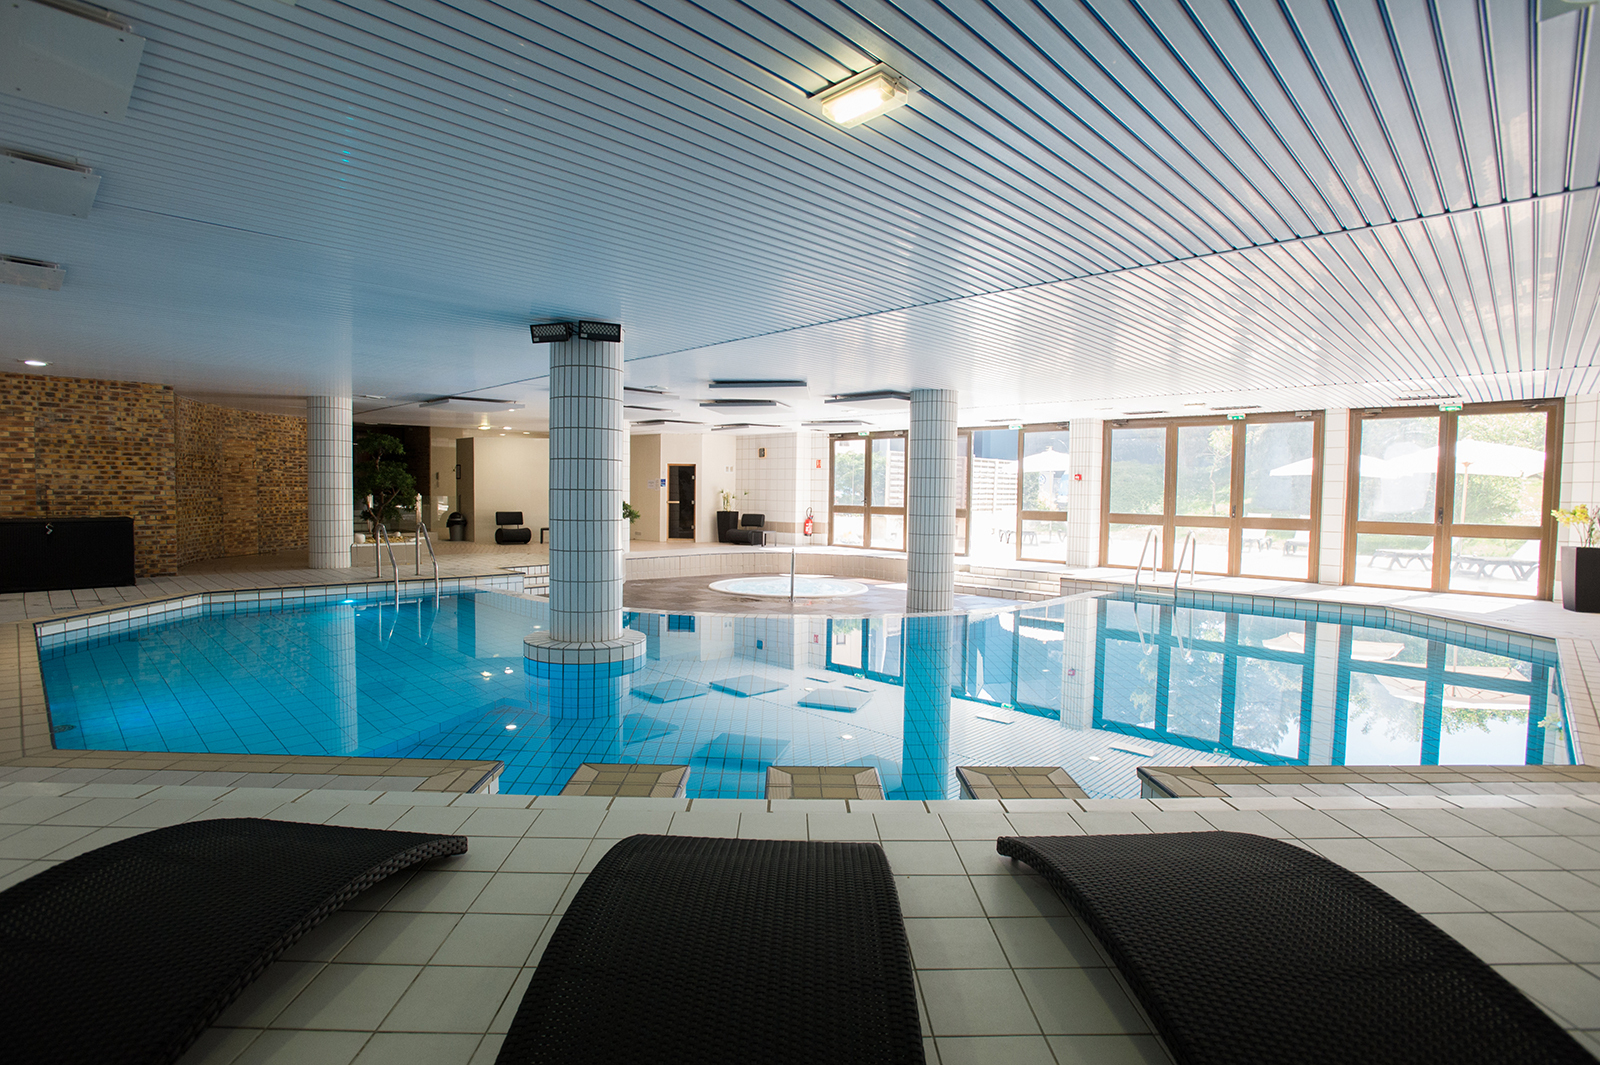 Hotel-Mercure-Tours-Sud • Touraine Hotels à Piscine Chambray Les Tours